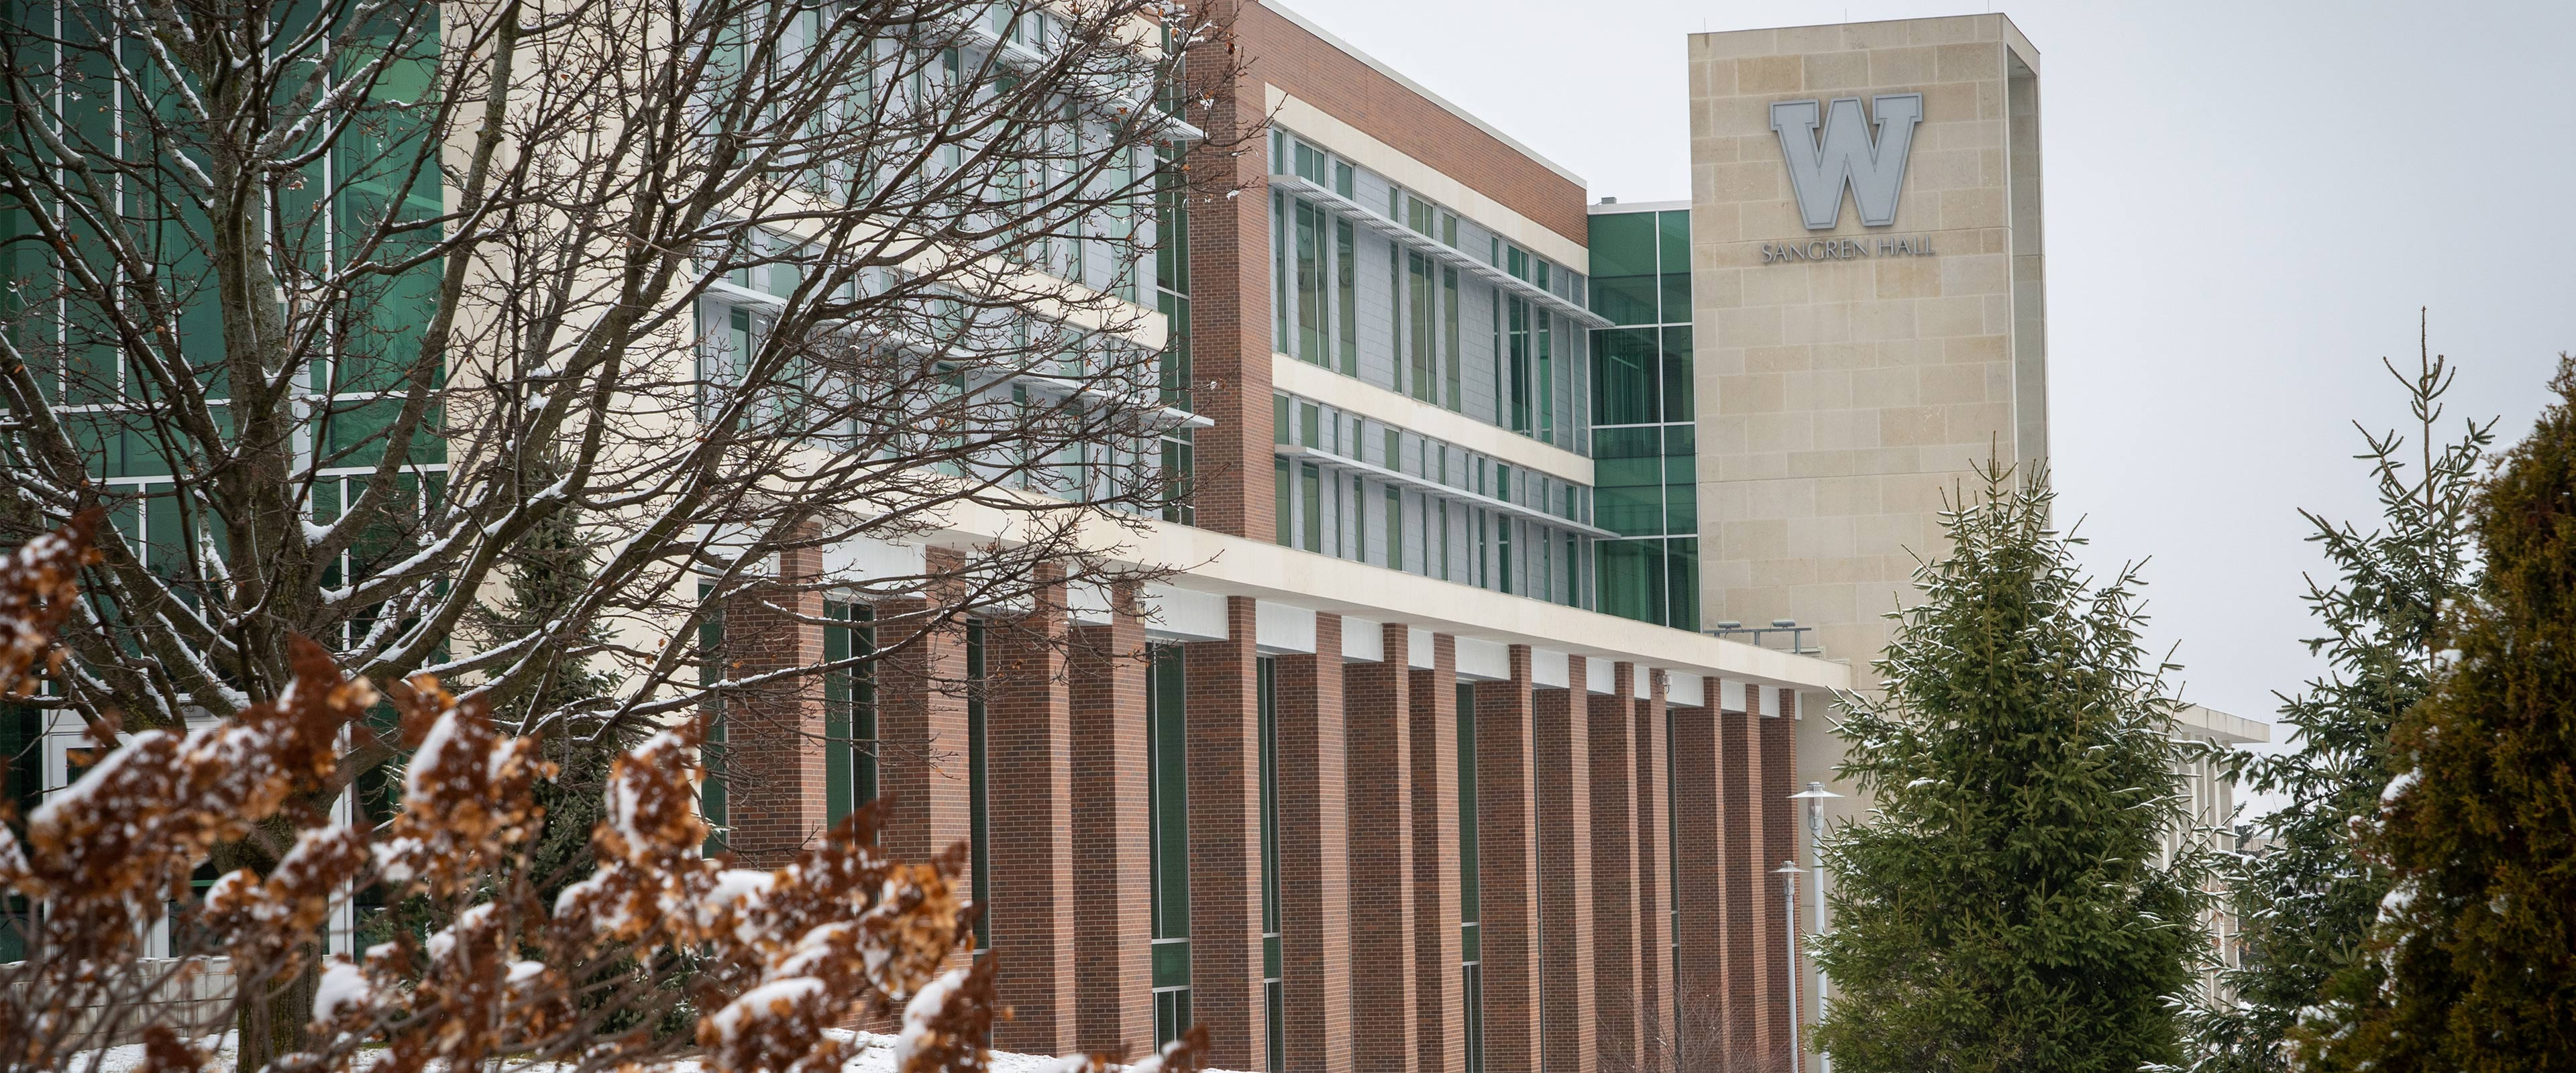 A snowy scene in front of Sangren Hall.